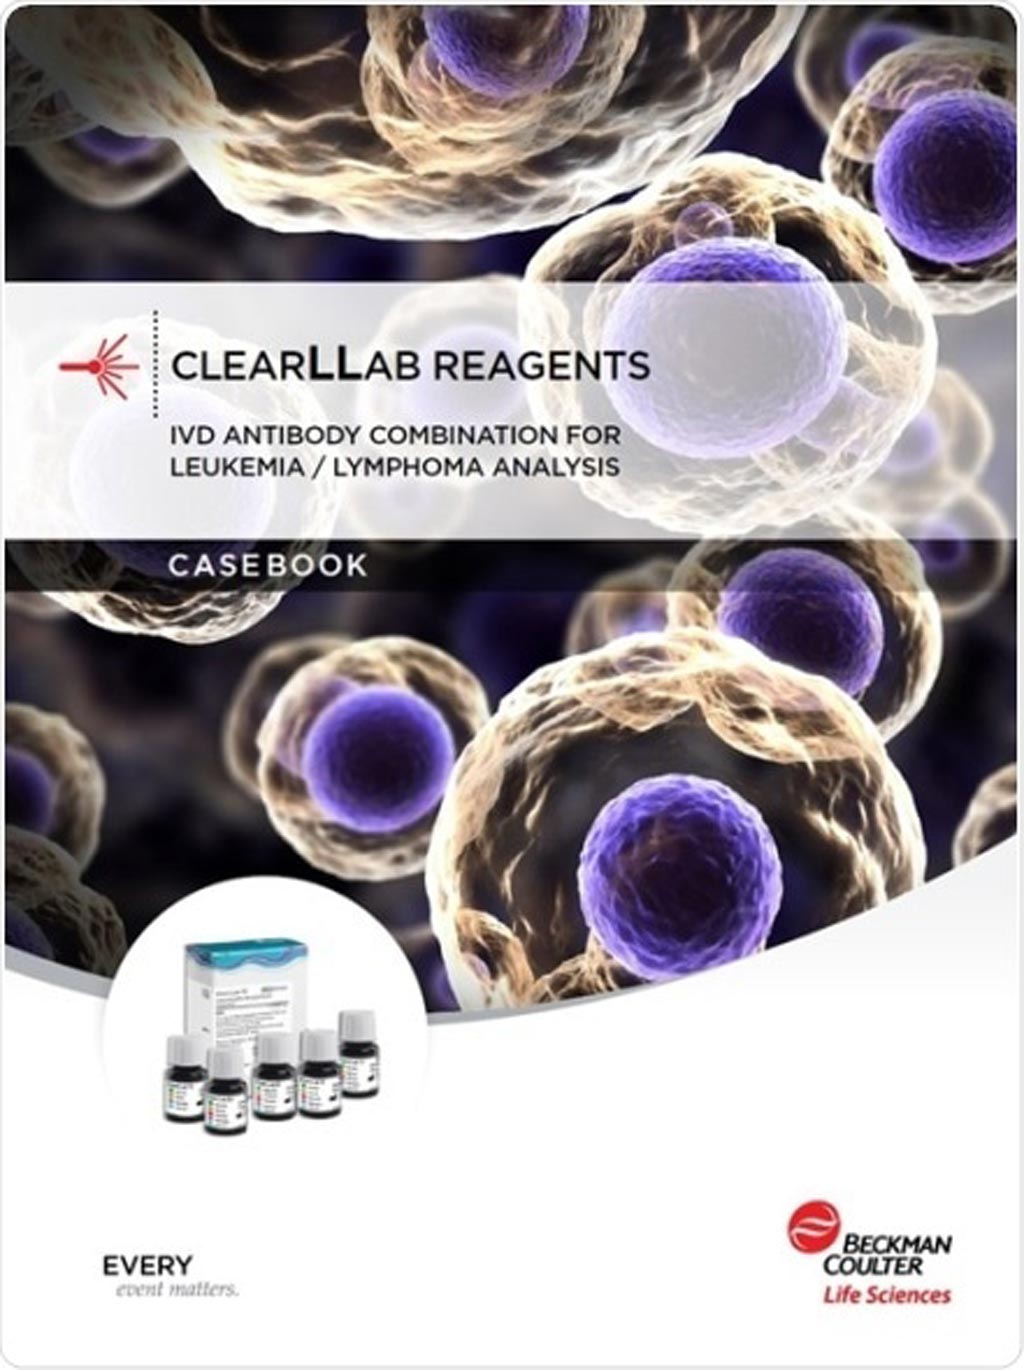 Image: The ClearLLab Casebook 5C (Photo courtesy of Beckman Coulter).